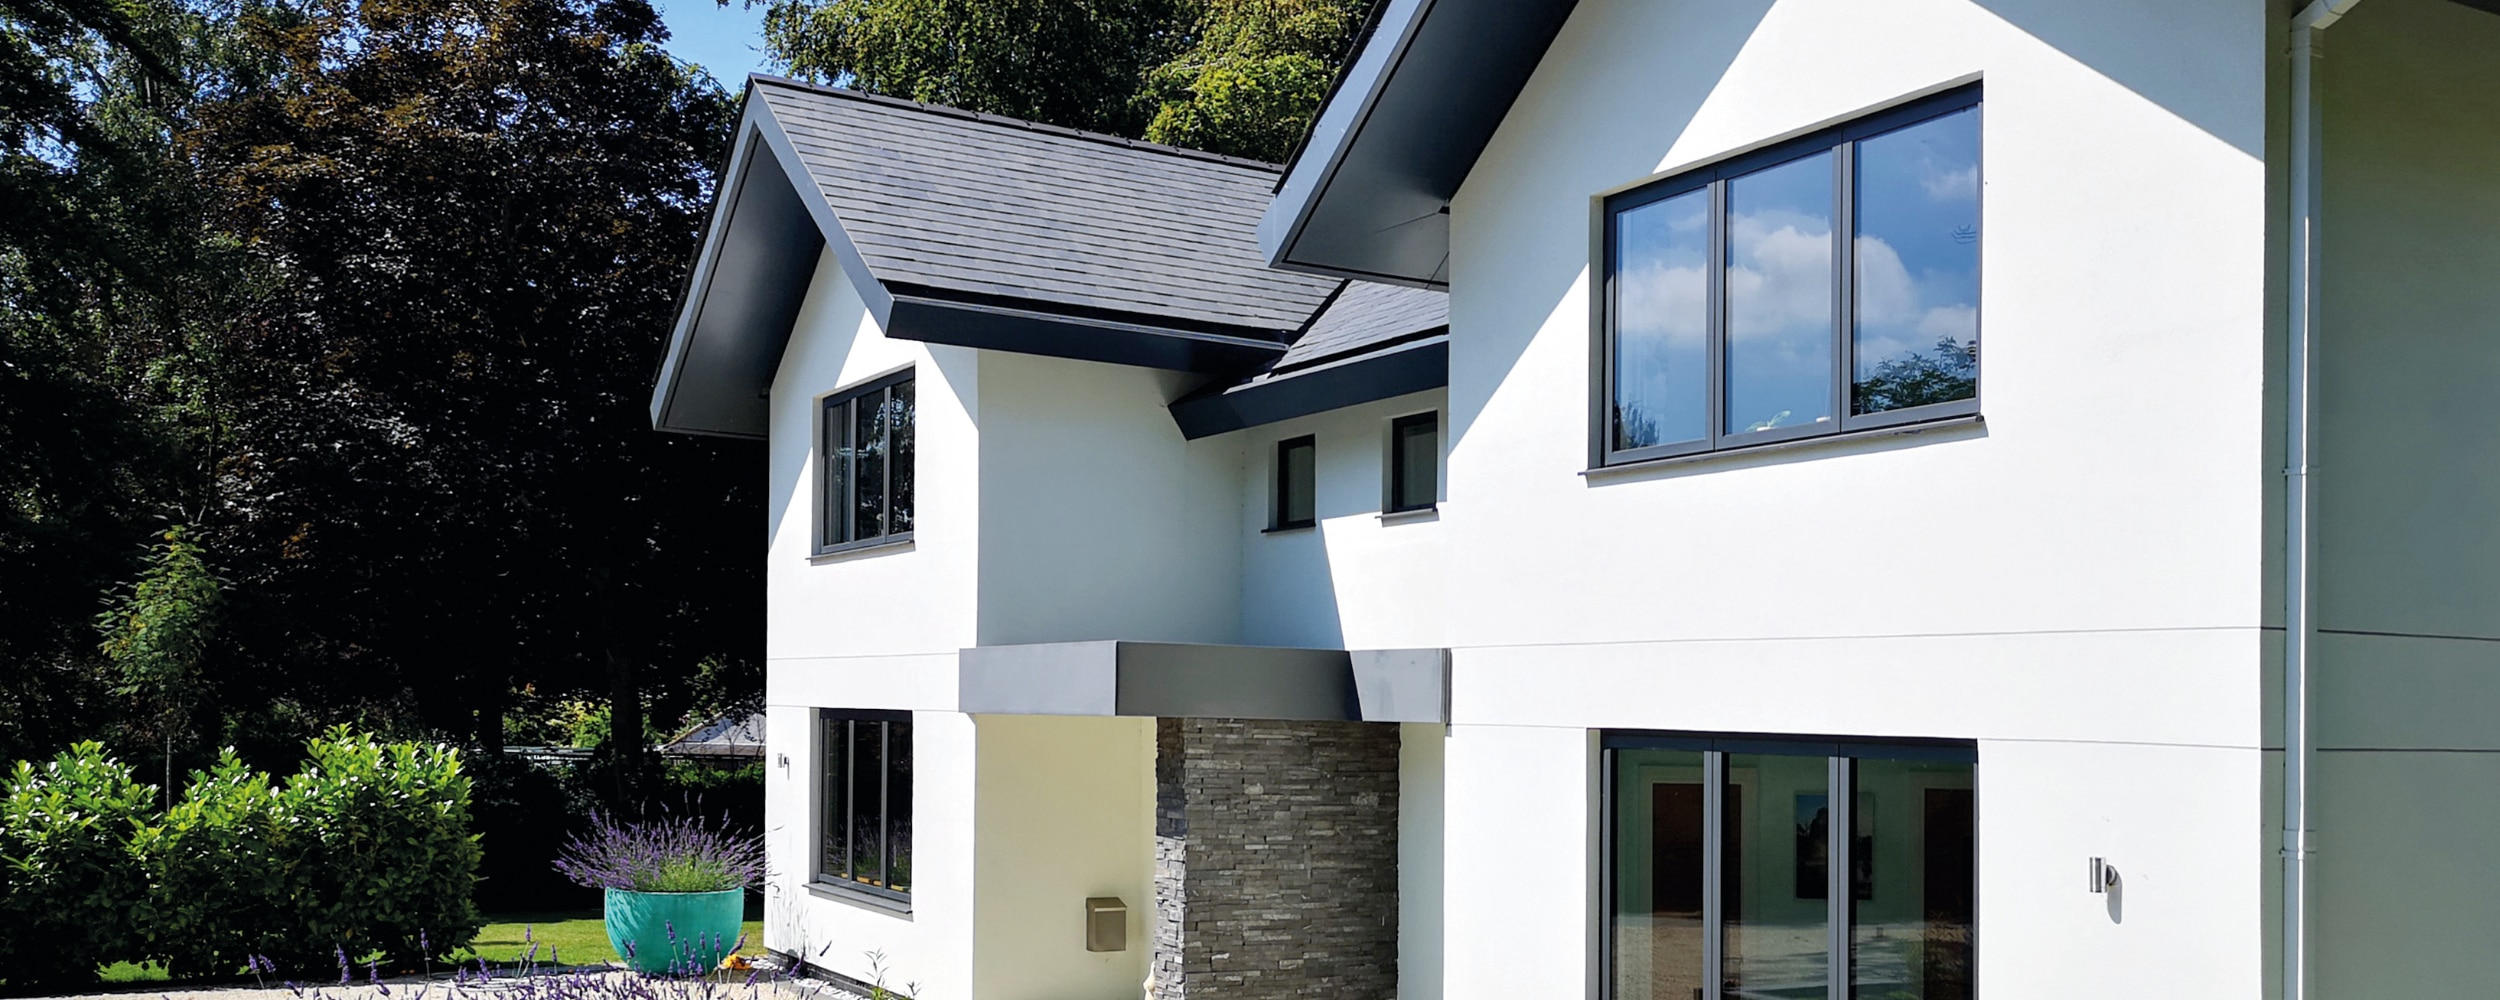 IDSystems high quality aluminium windows with openings